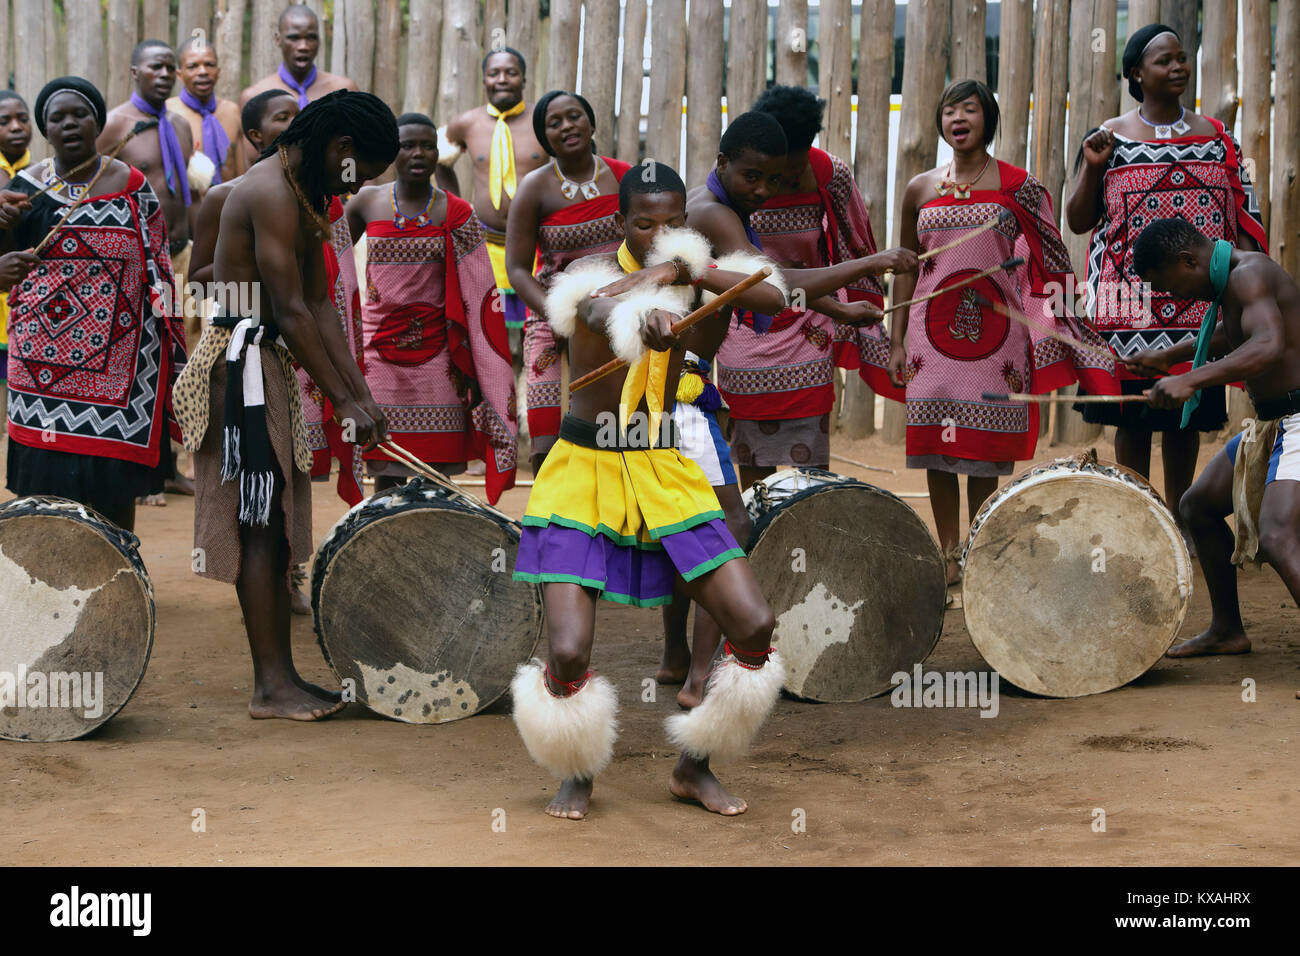 Natives dancing, singing and playing drums during traditional African show, Swaziland - Stock Image